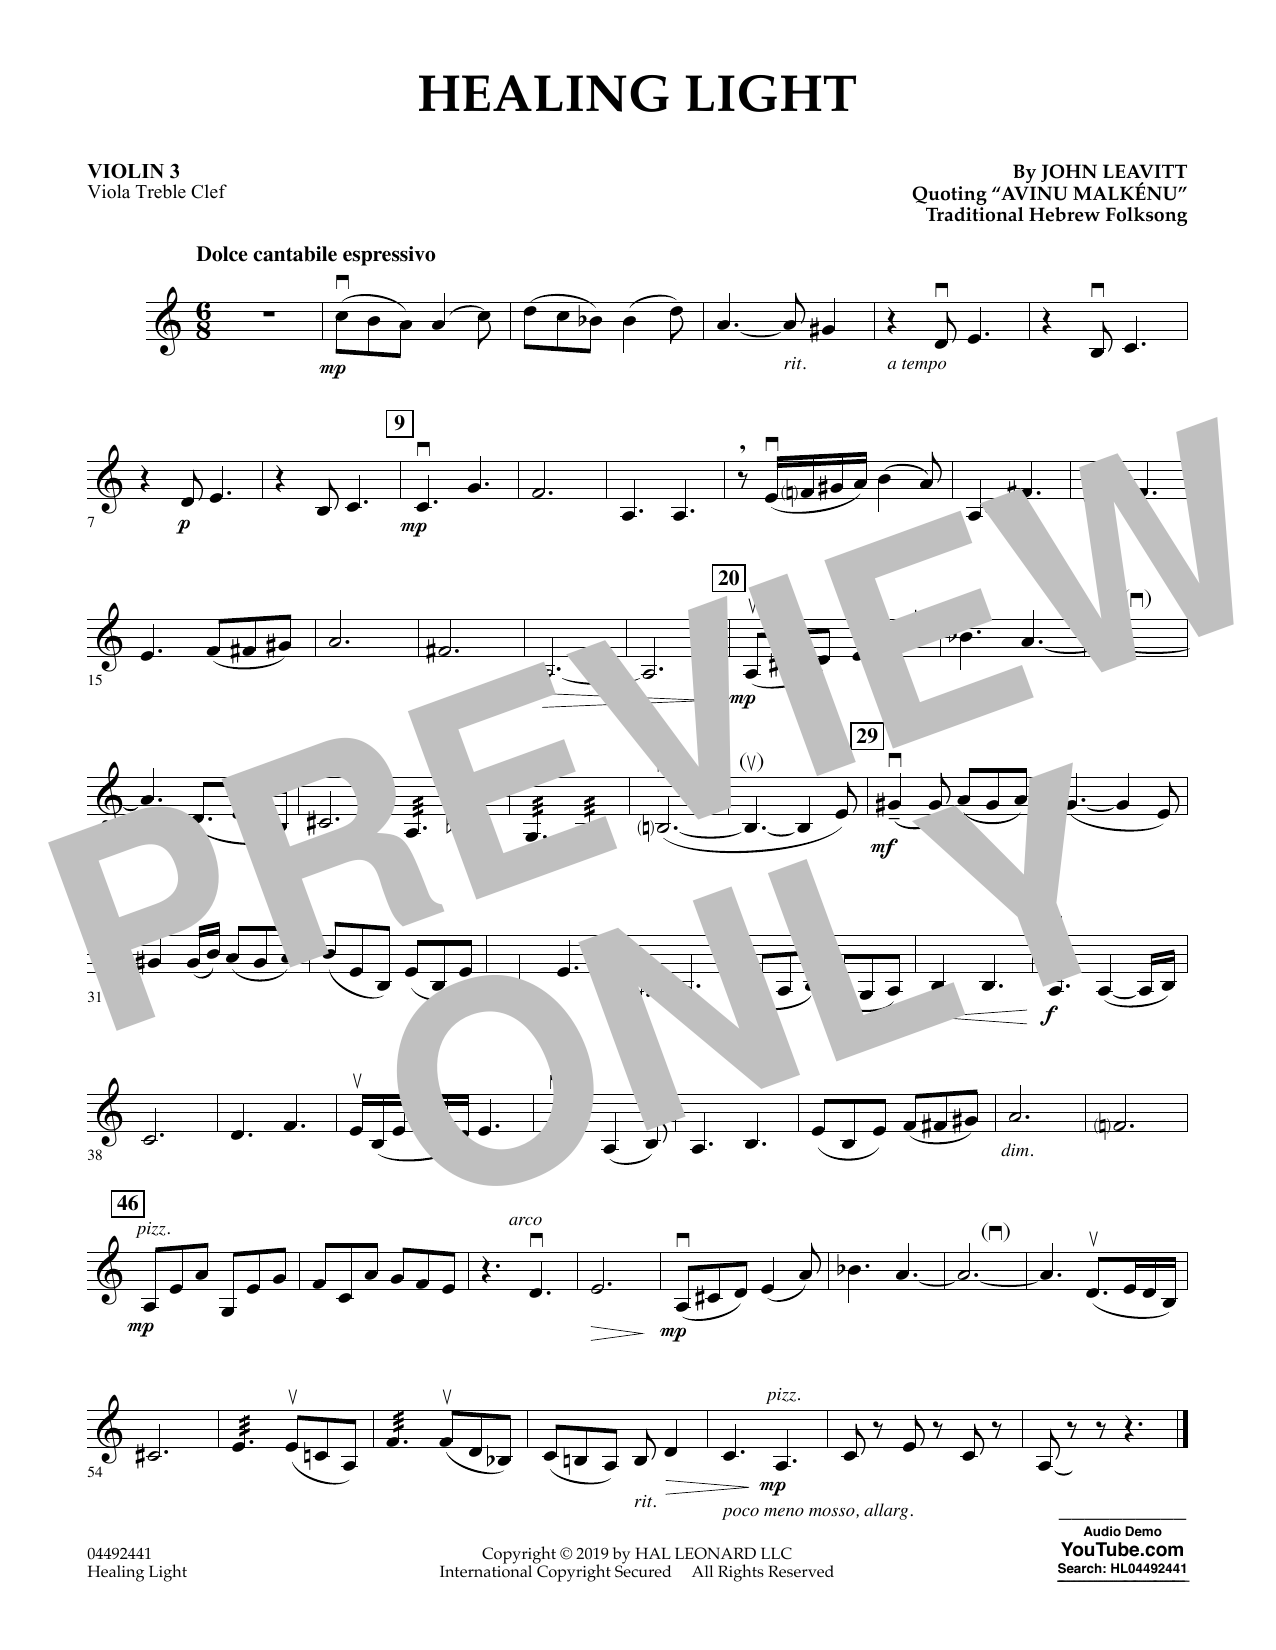 John Leavitt Healing Light - Violin 3 (Viola Treble Clef) sheet music preview music notes and score for Orchestra including 1 page(s)